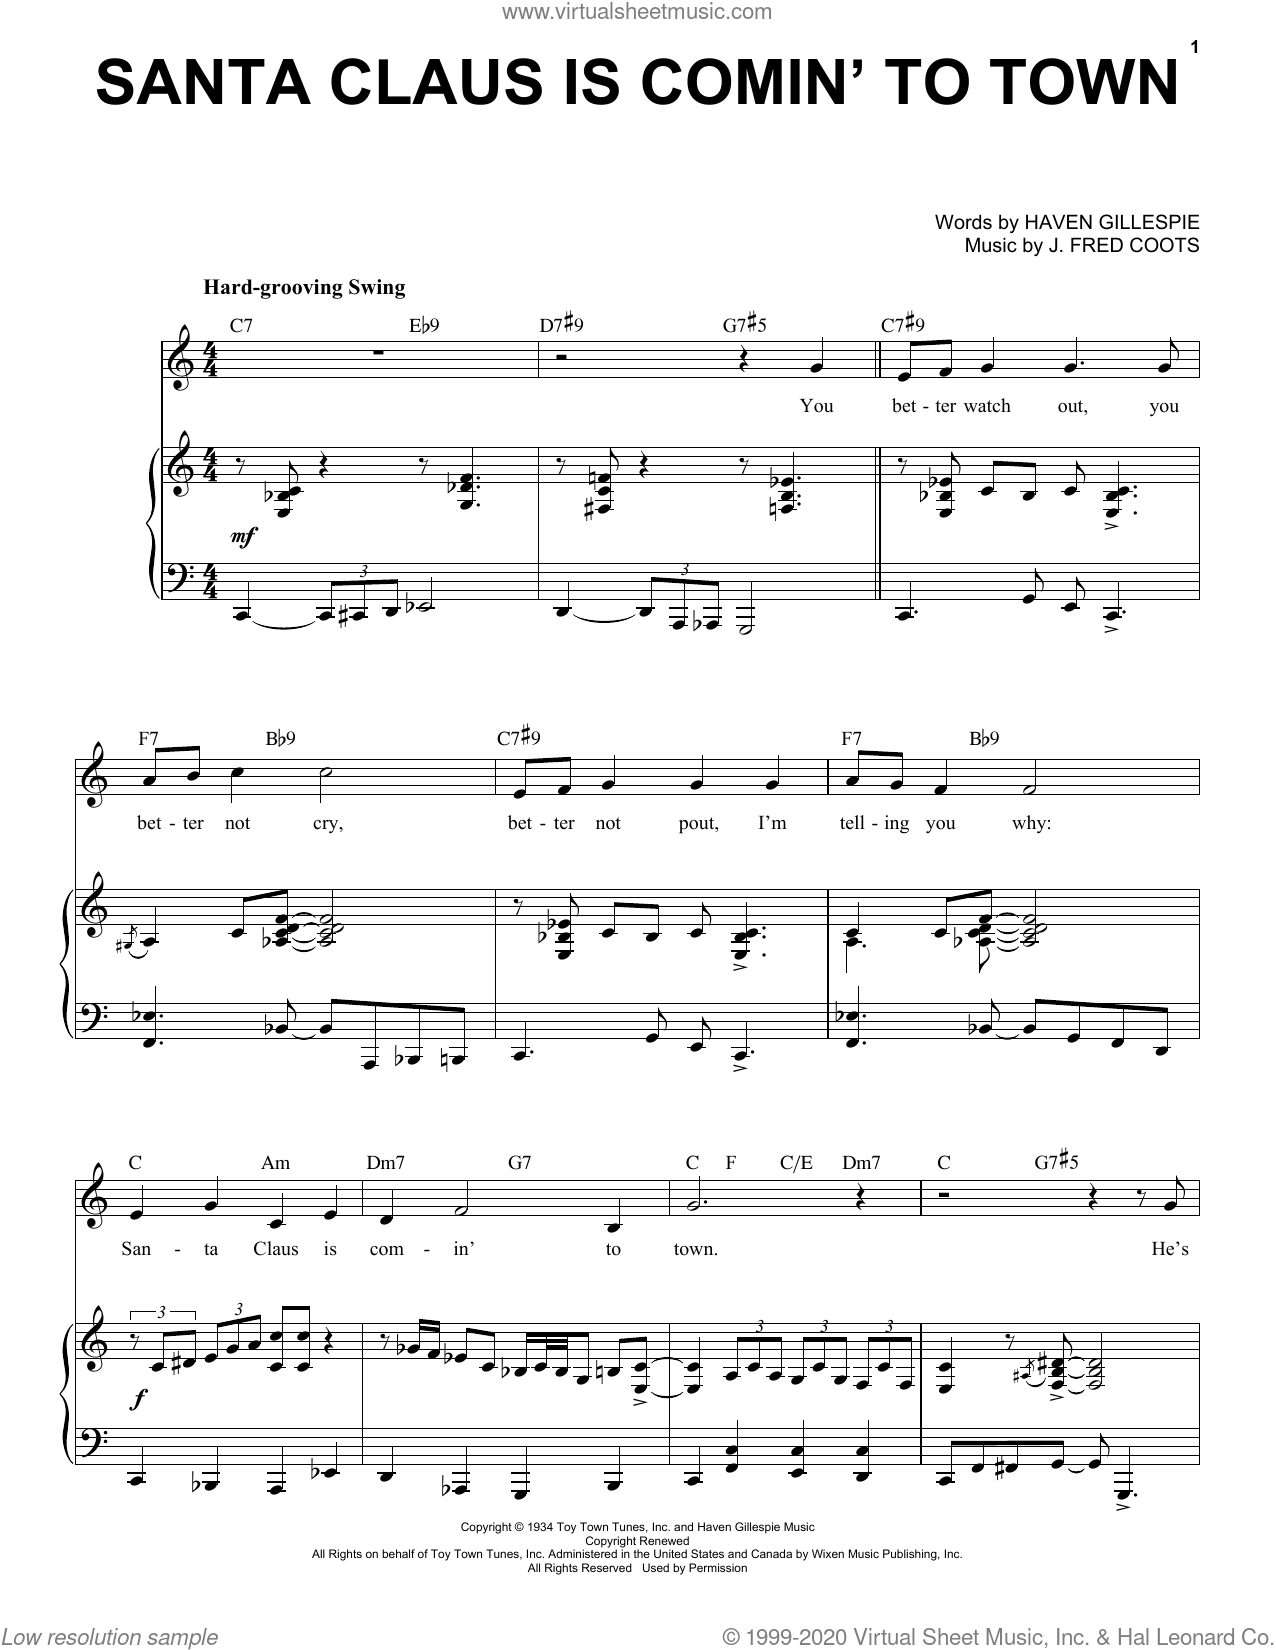 Santa Claus Is Comin' To Town [Jazz Version] (arr. Brent Edstrom) sheet music for voice and piano (High Voice) by J. Fred Coots, Brent Edstrom and Haven Gillespie, intermediate skill level